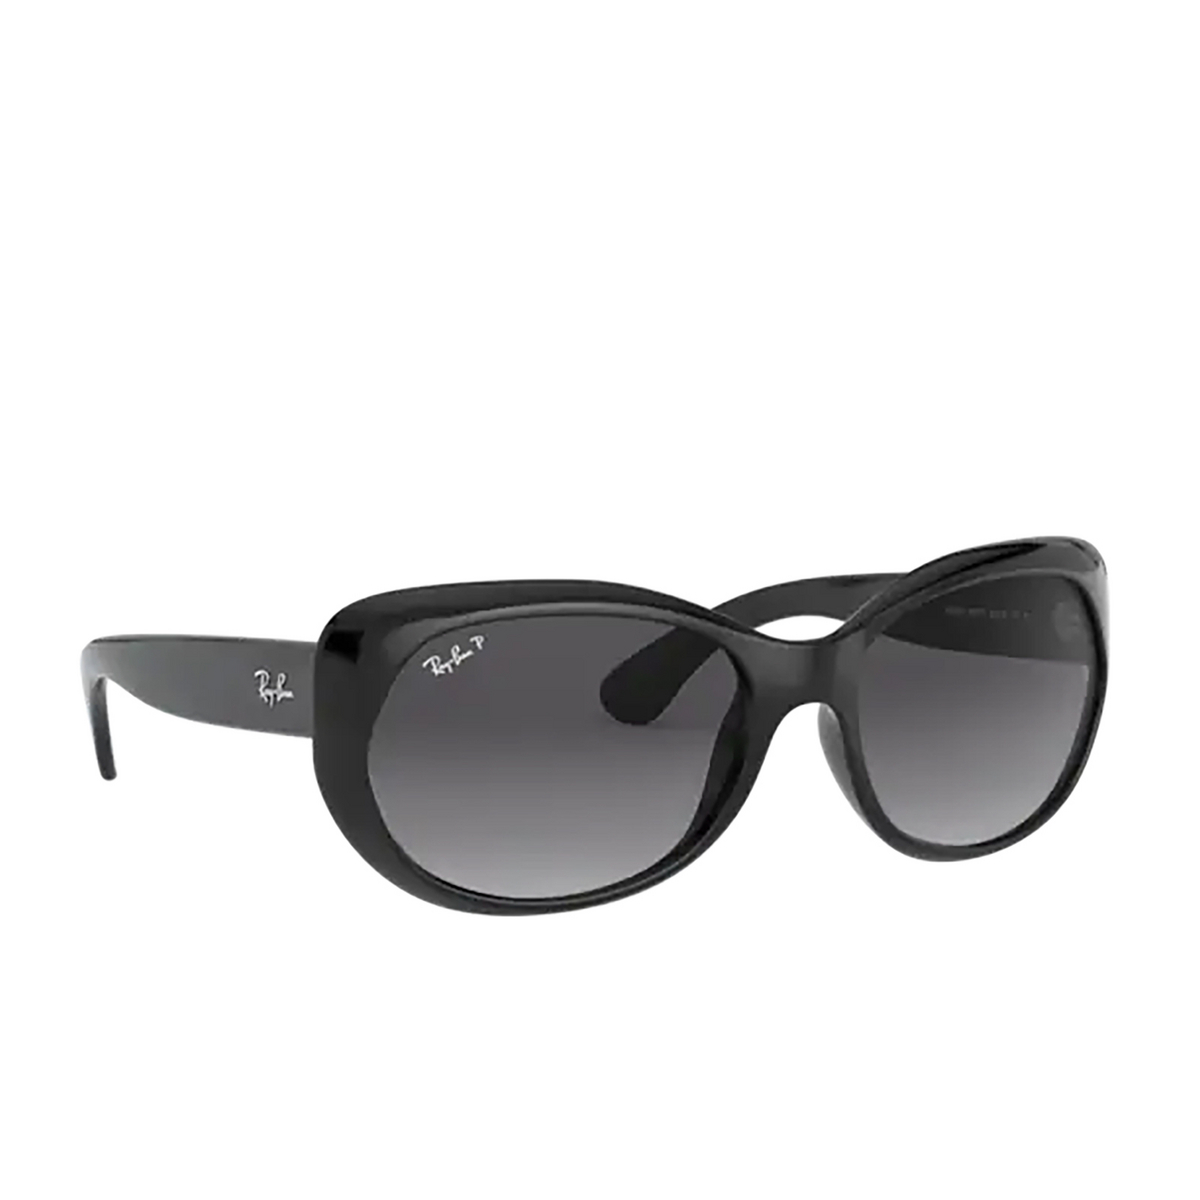 Ray-Ban® Oval Sunglasses: RB4325 color Black 601/T3 - three-quarters view.